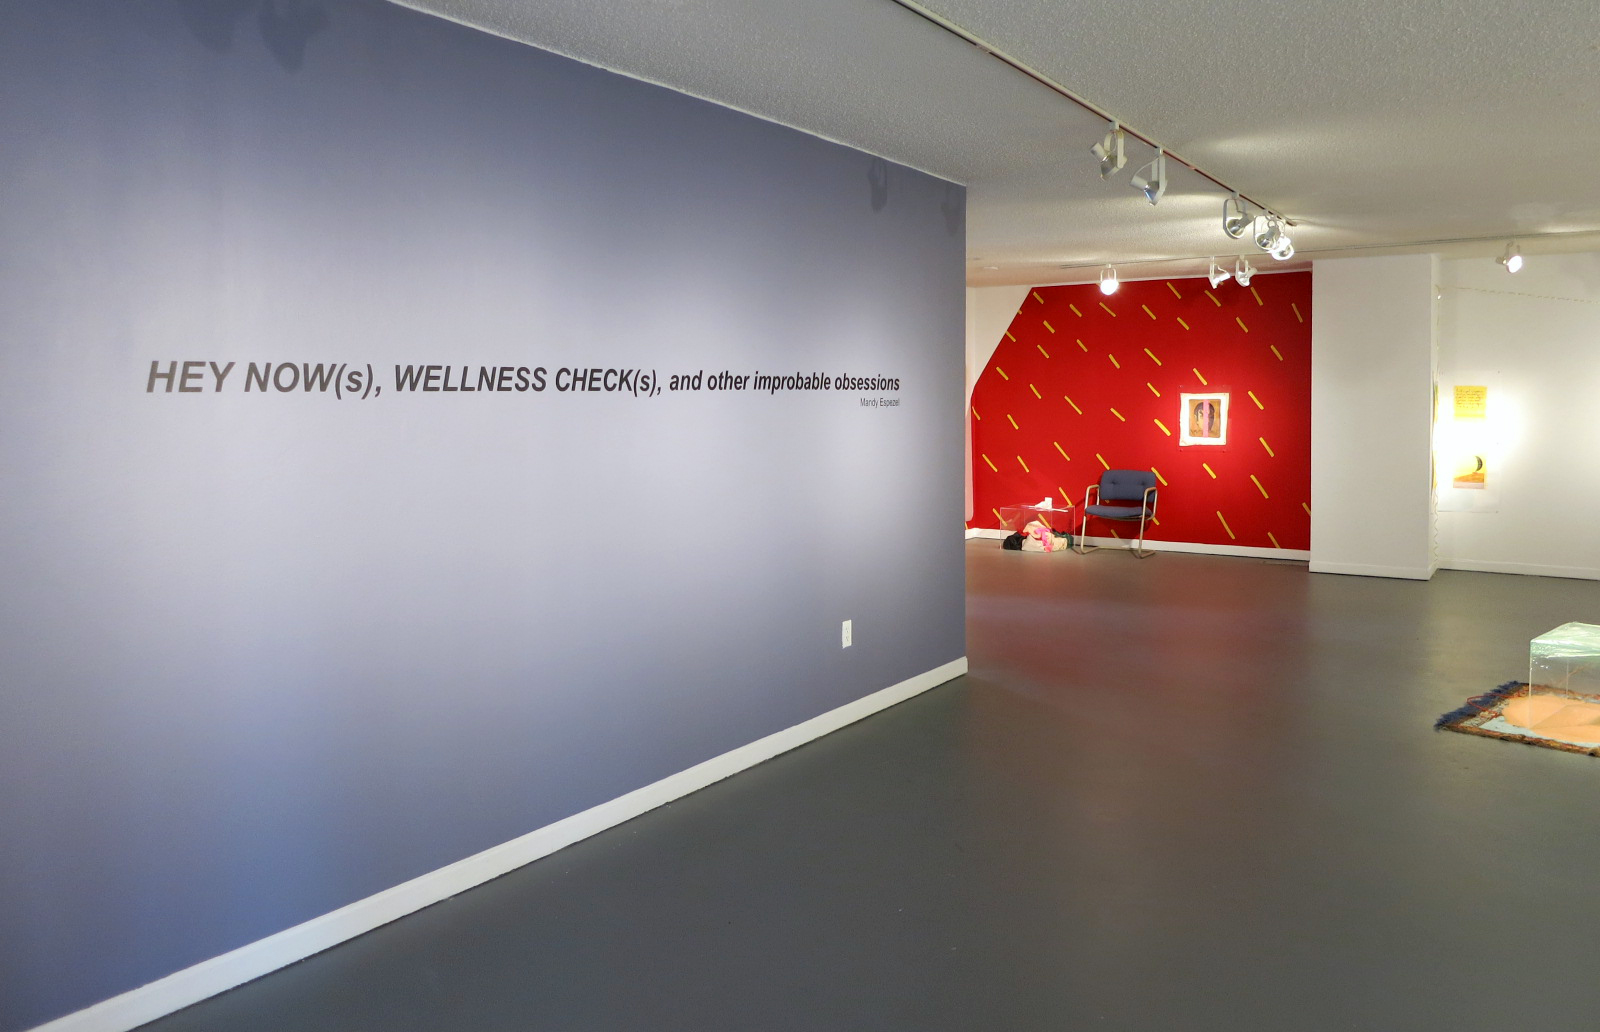 HEY NOW(s), WELLNESS CHECK(s), and other improbable obsessions